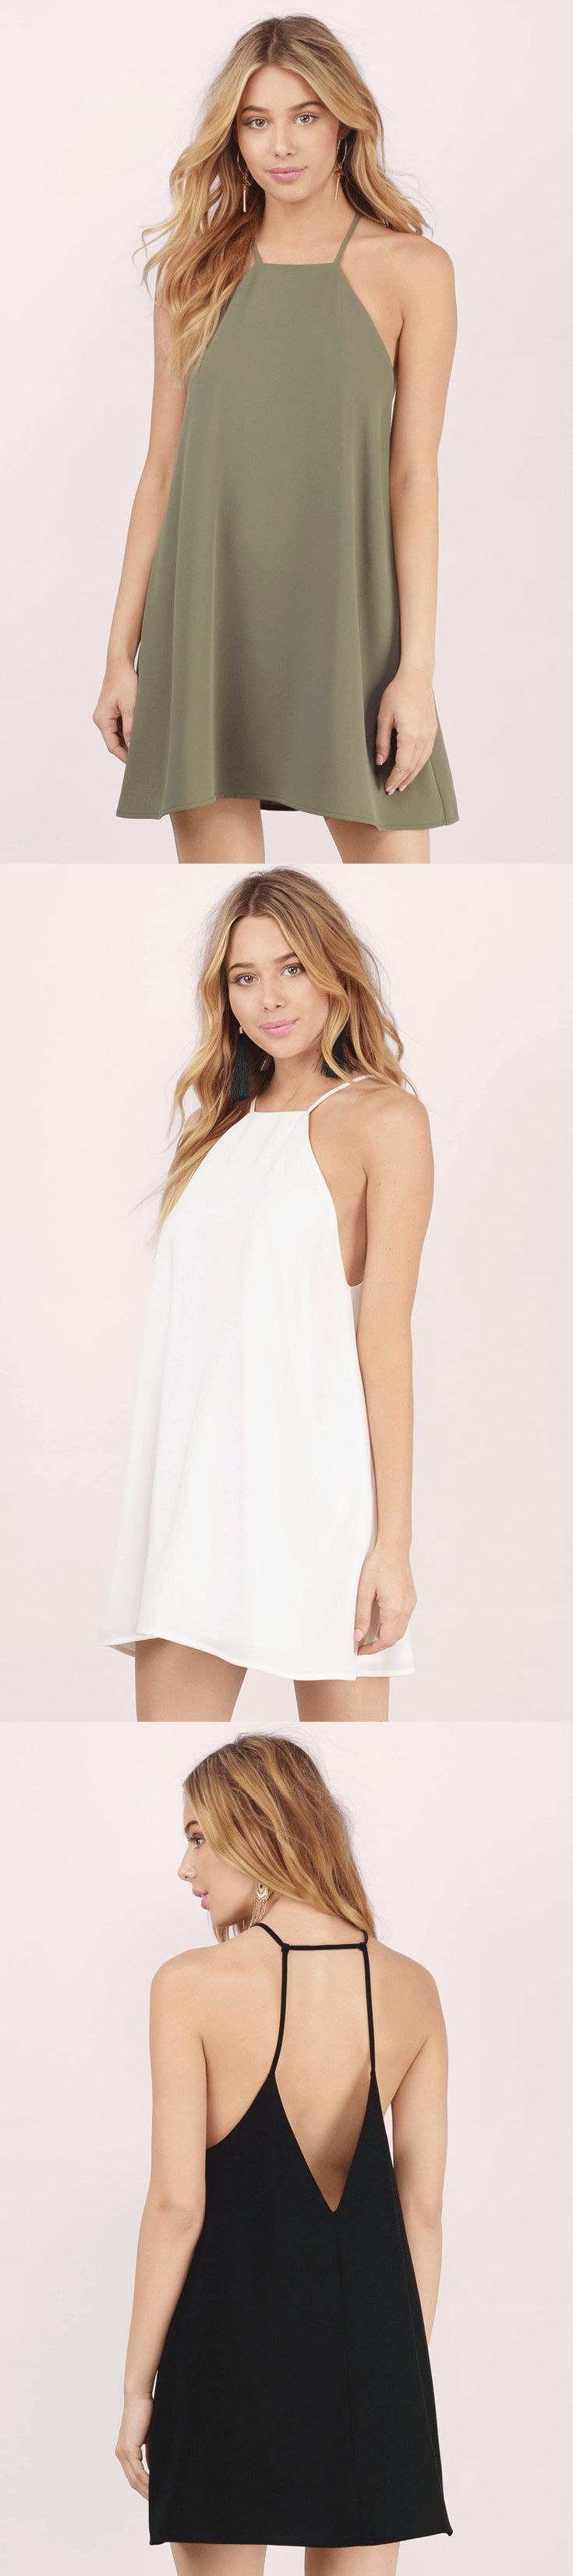 Little Thrills Shift Dress Check out our best sellers and more at www.TOBI.com | #SHOPTobi | | Don't forget 50% off your first order. on us.